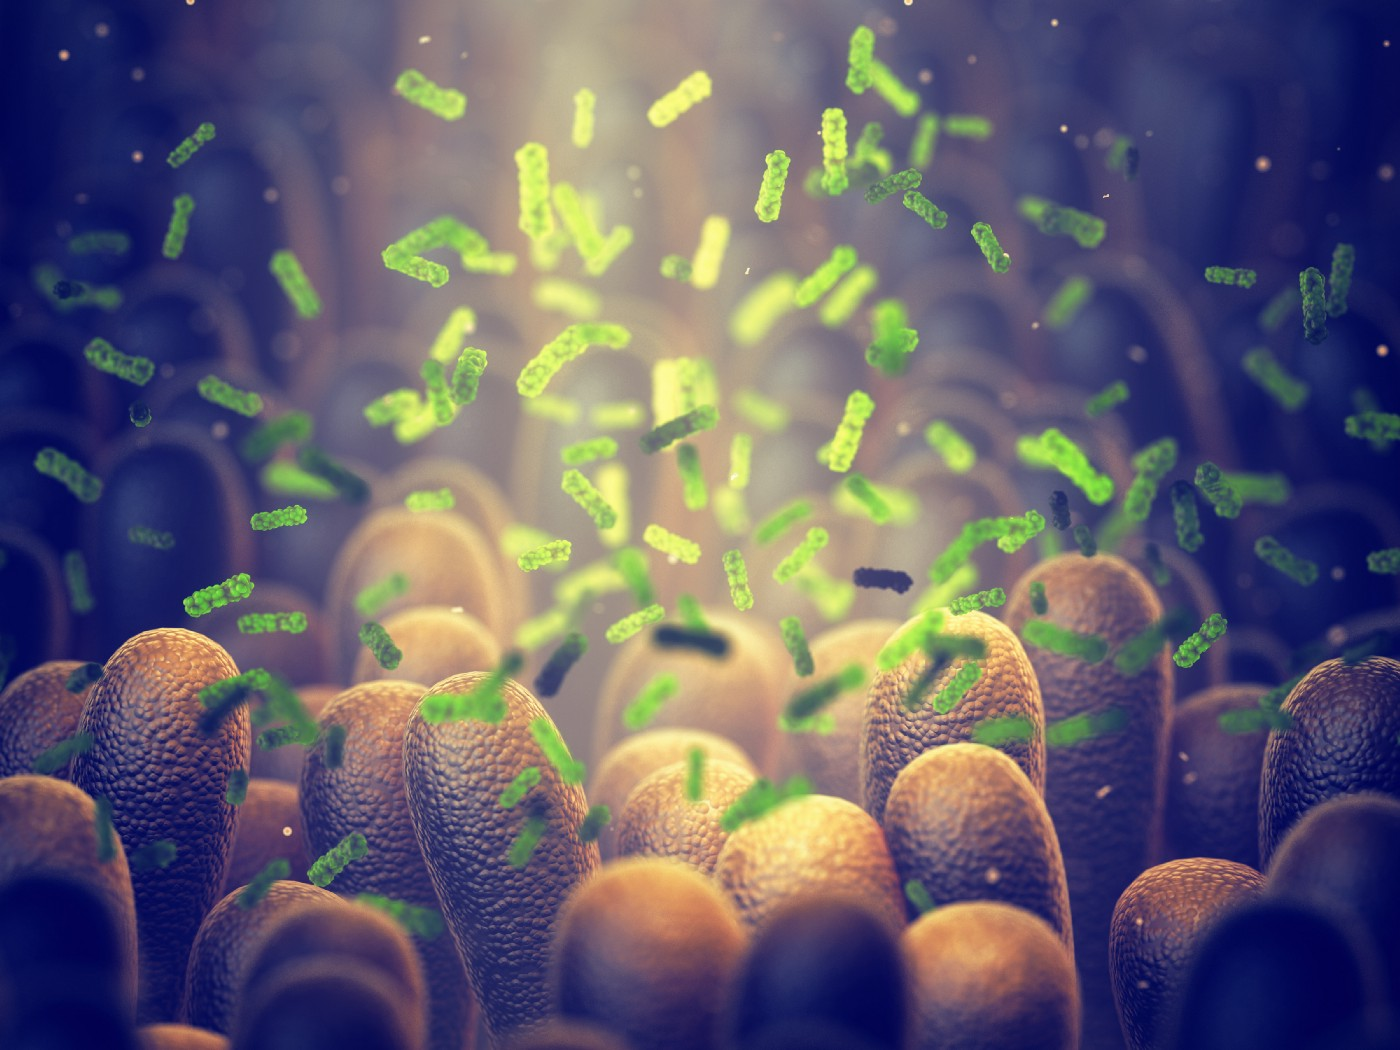 The gut microbiota impact digestion and interface with the host immune system.